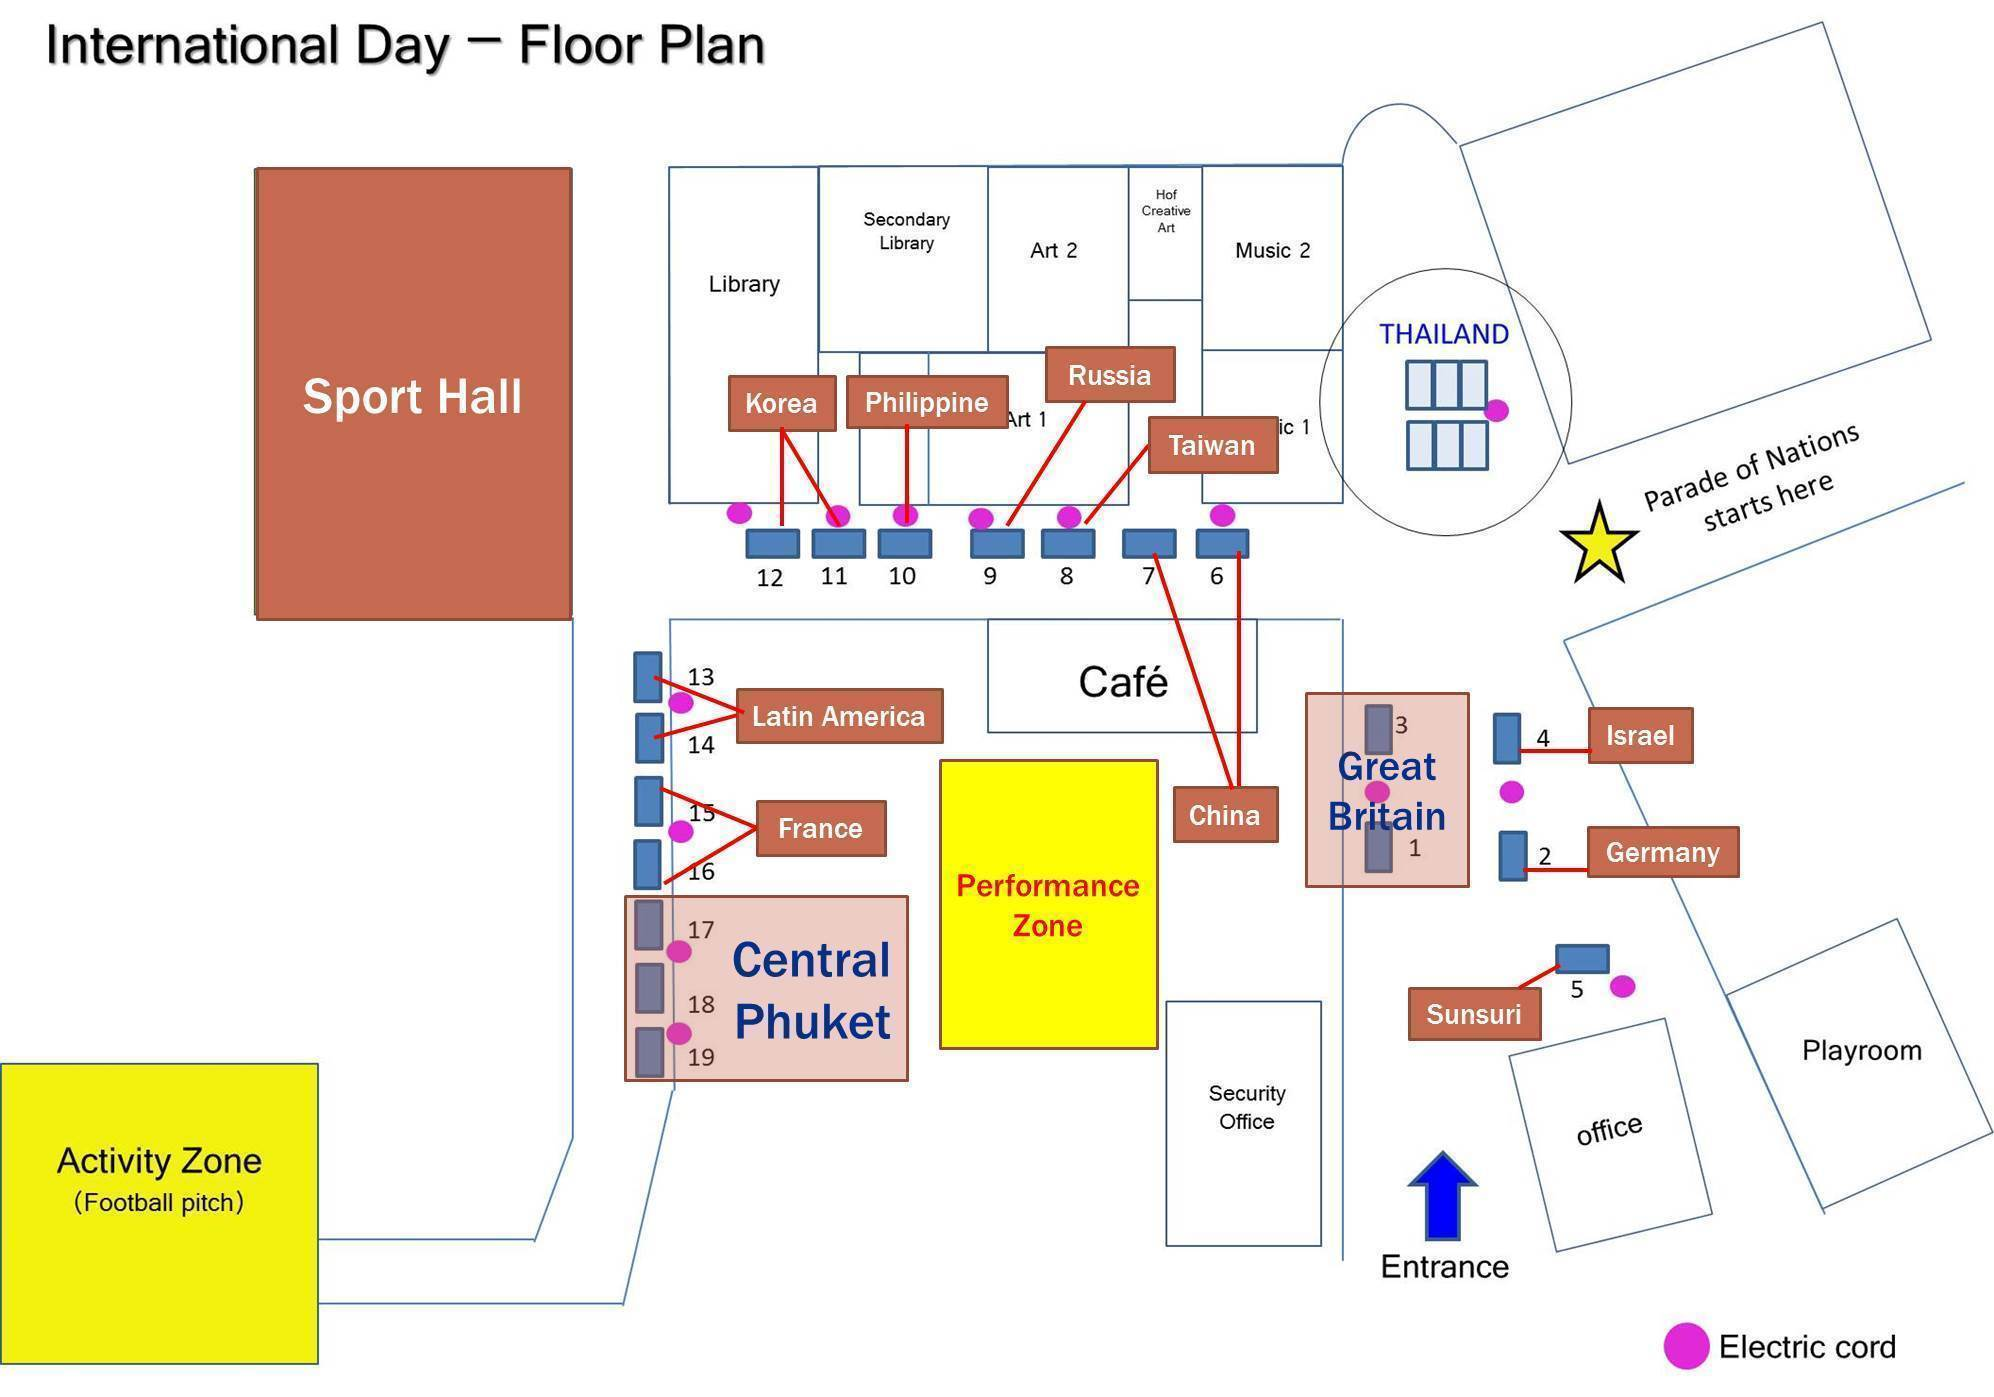 Internationa day Floor plan booked updated